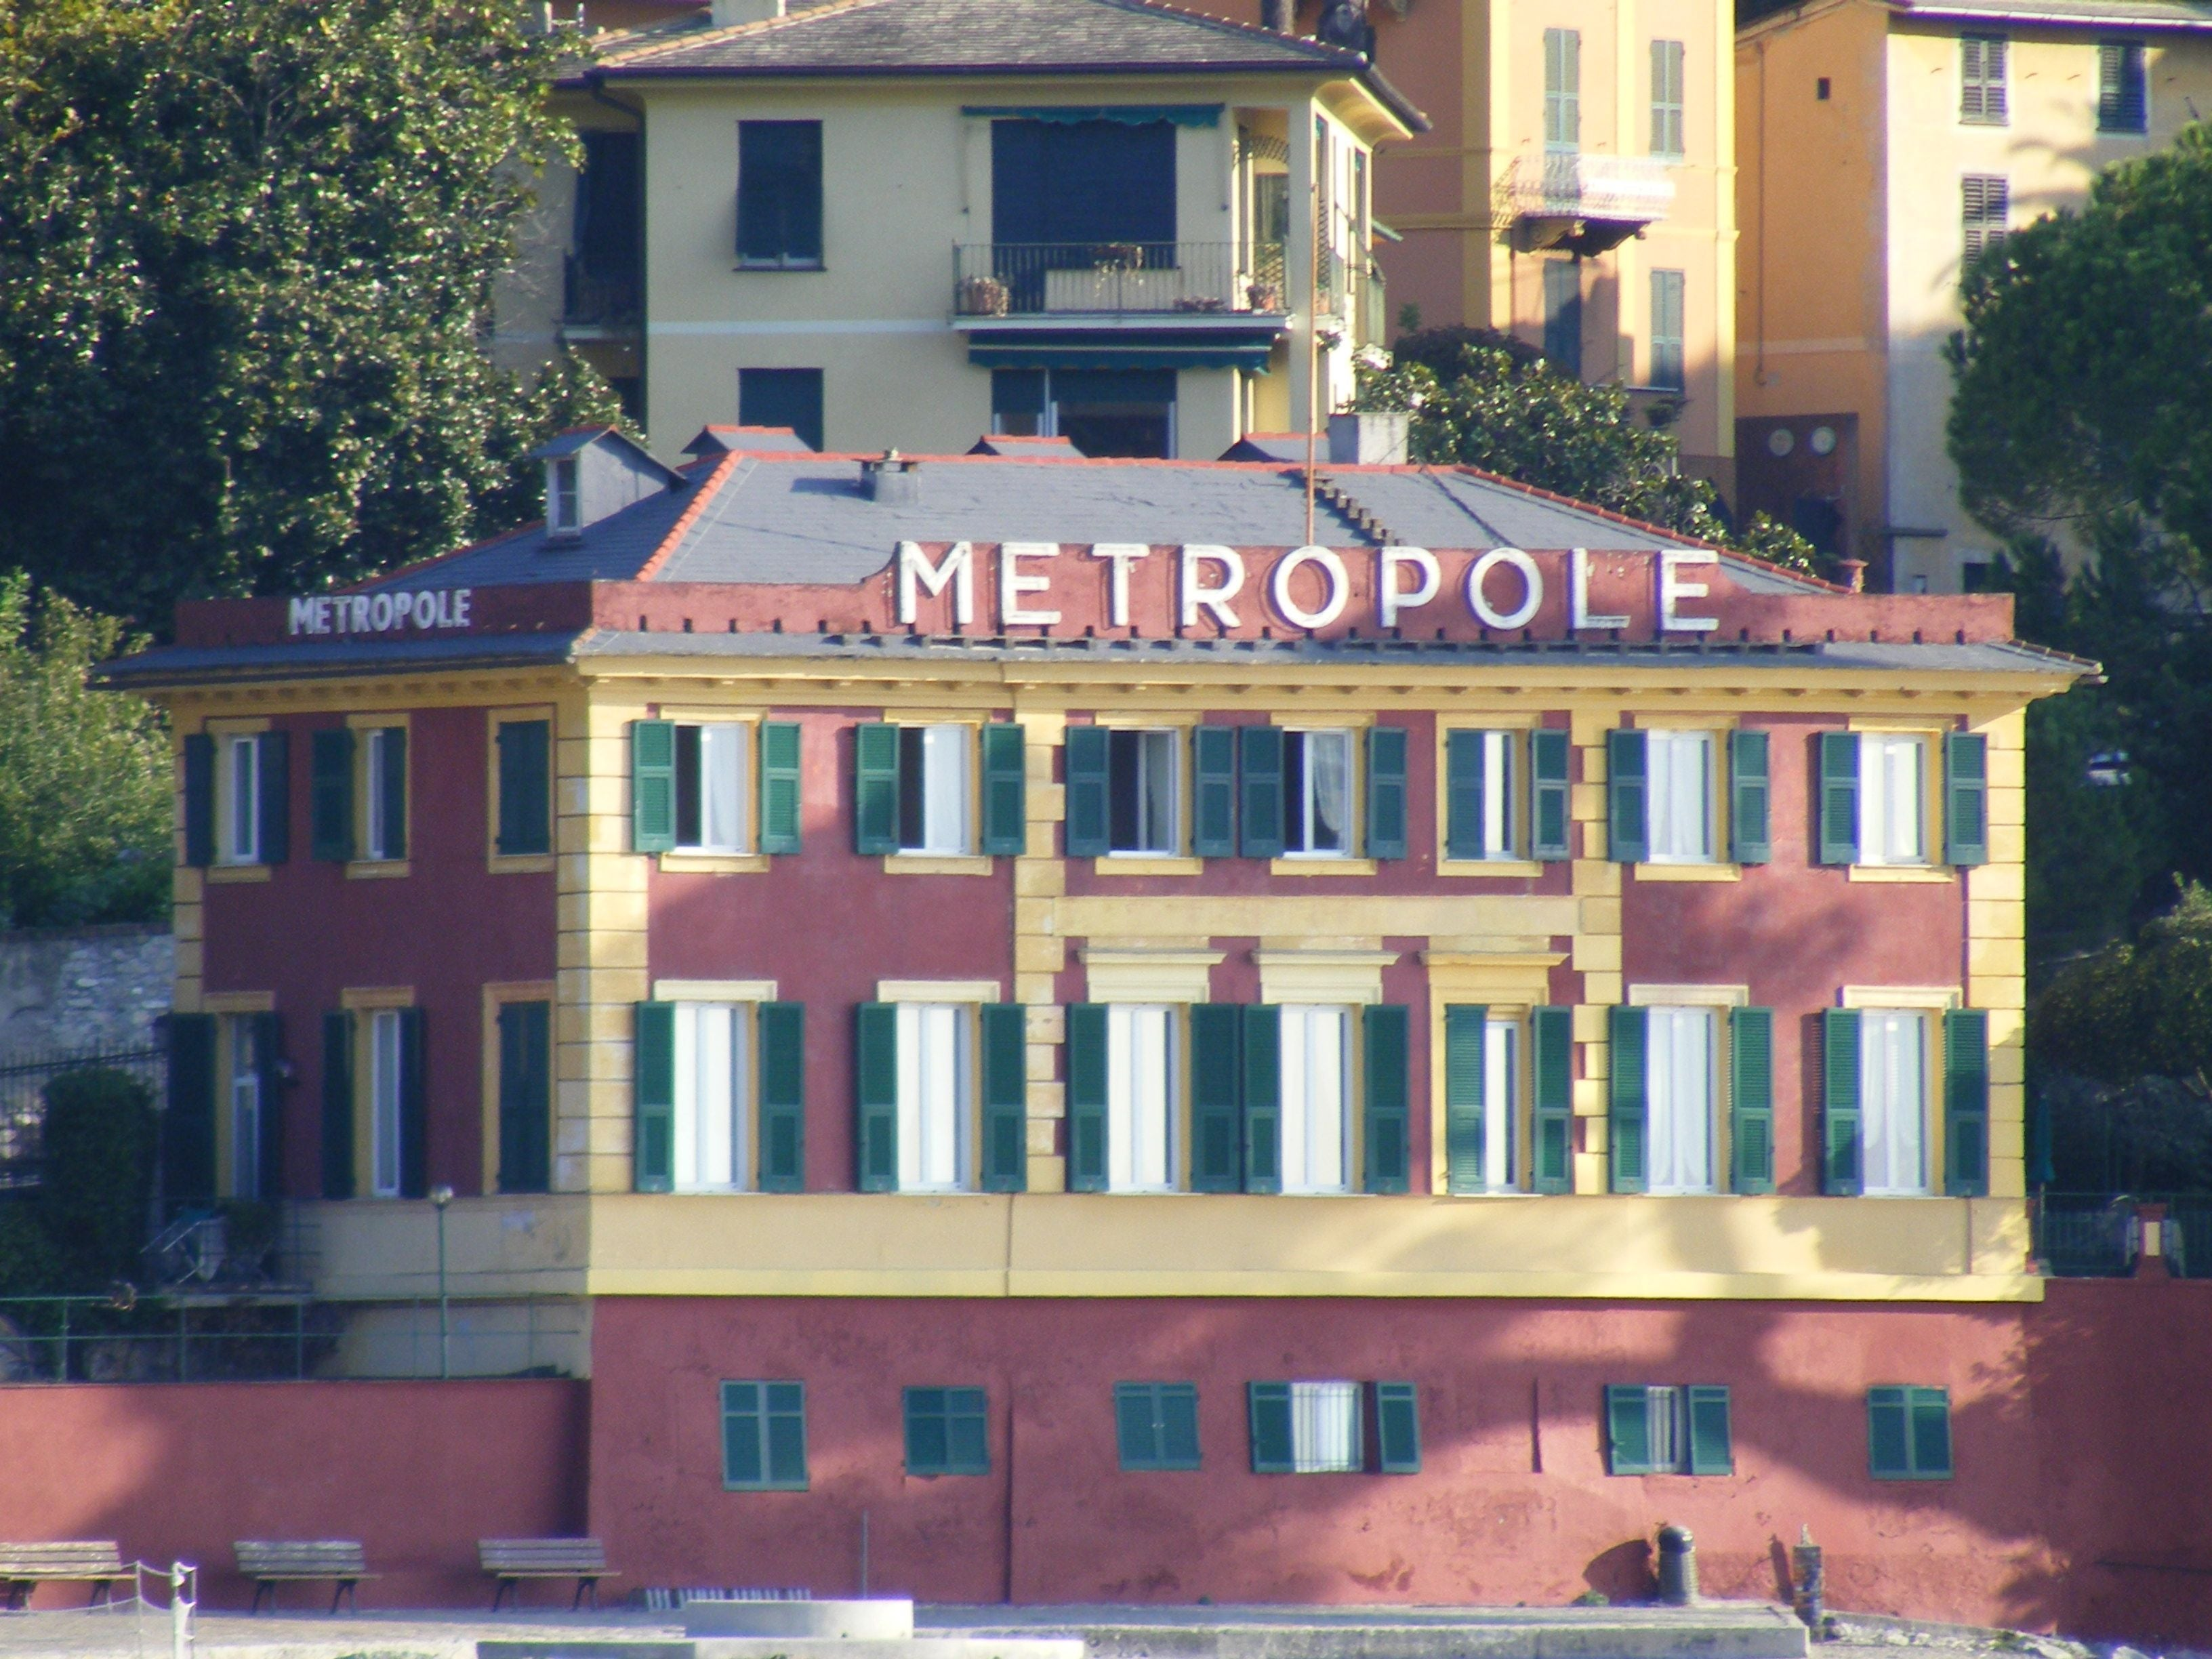 Edificio en Santa Margherita Ligure